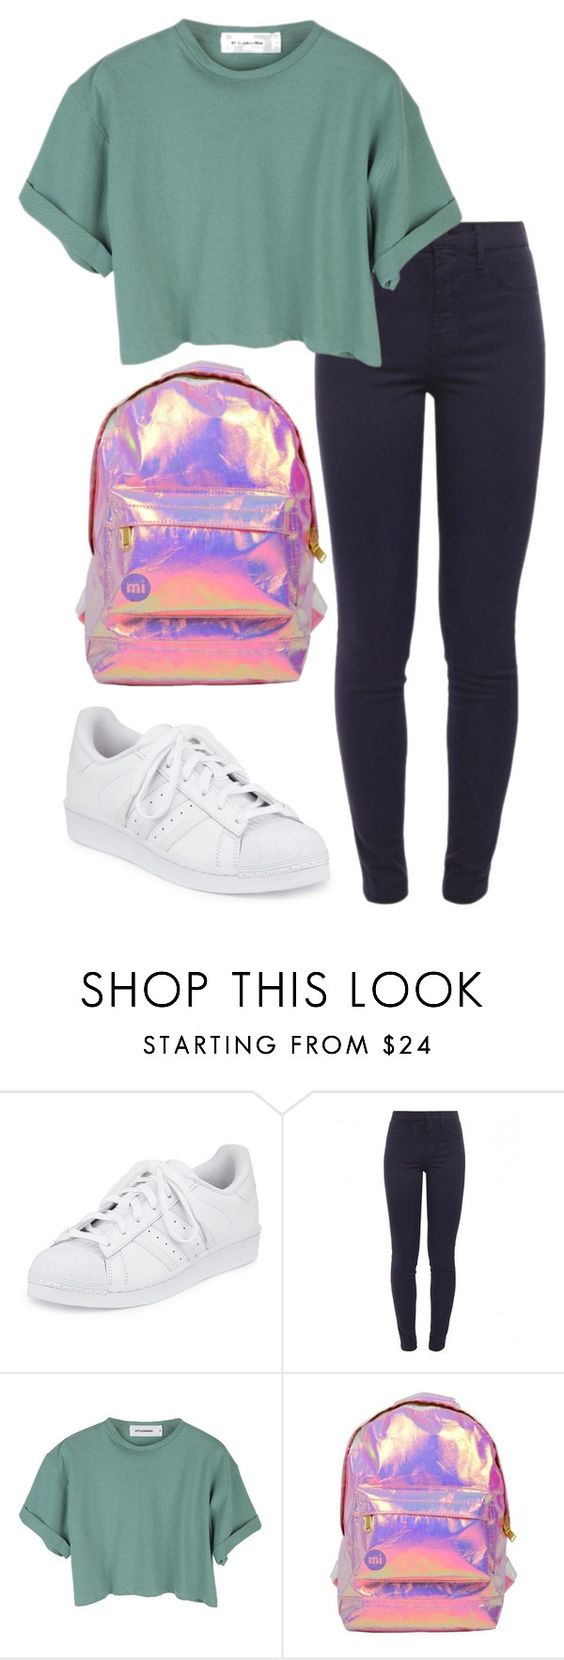 """normal people scare me."" by ebsmith726 ❤ liked on Polyvore featuring adidas, J Brand, StyleNanda and Miss Selfridge"